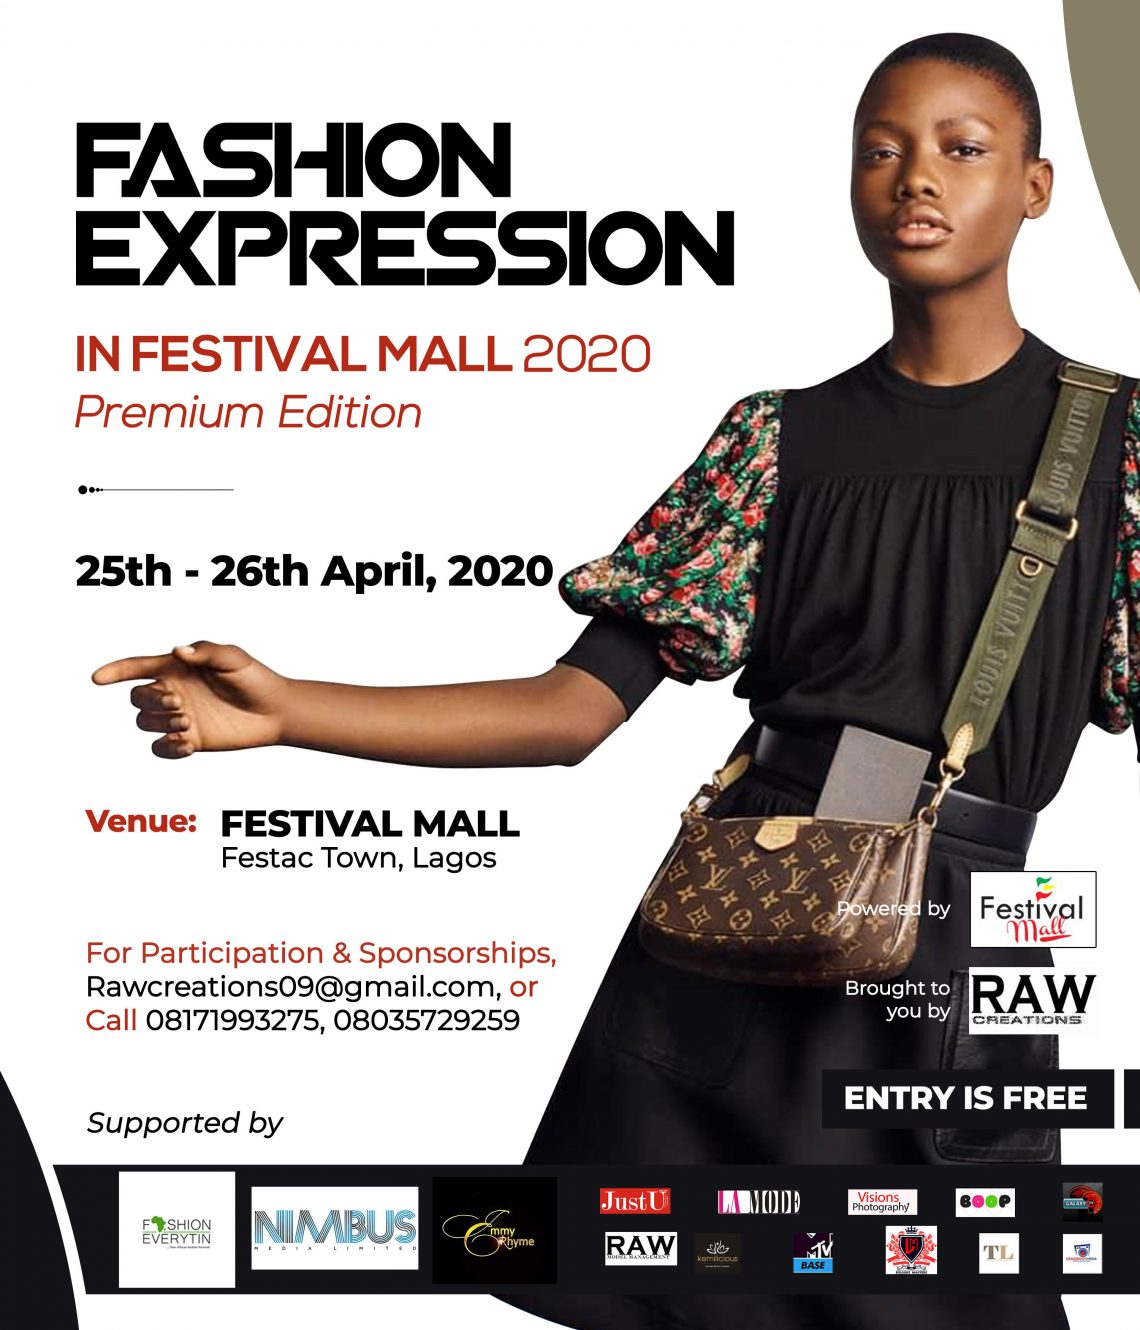 FASHION EXPRESSION PRESS RELEASE 2020